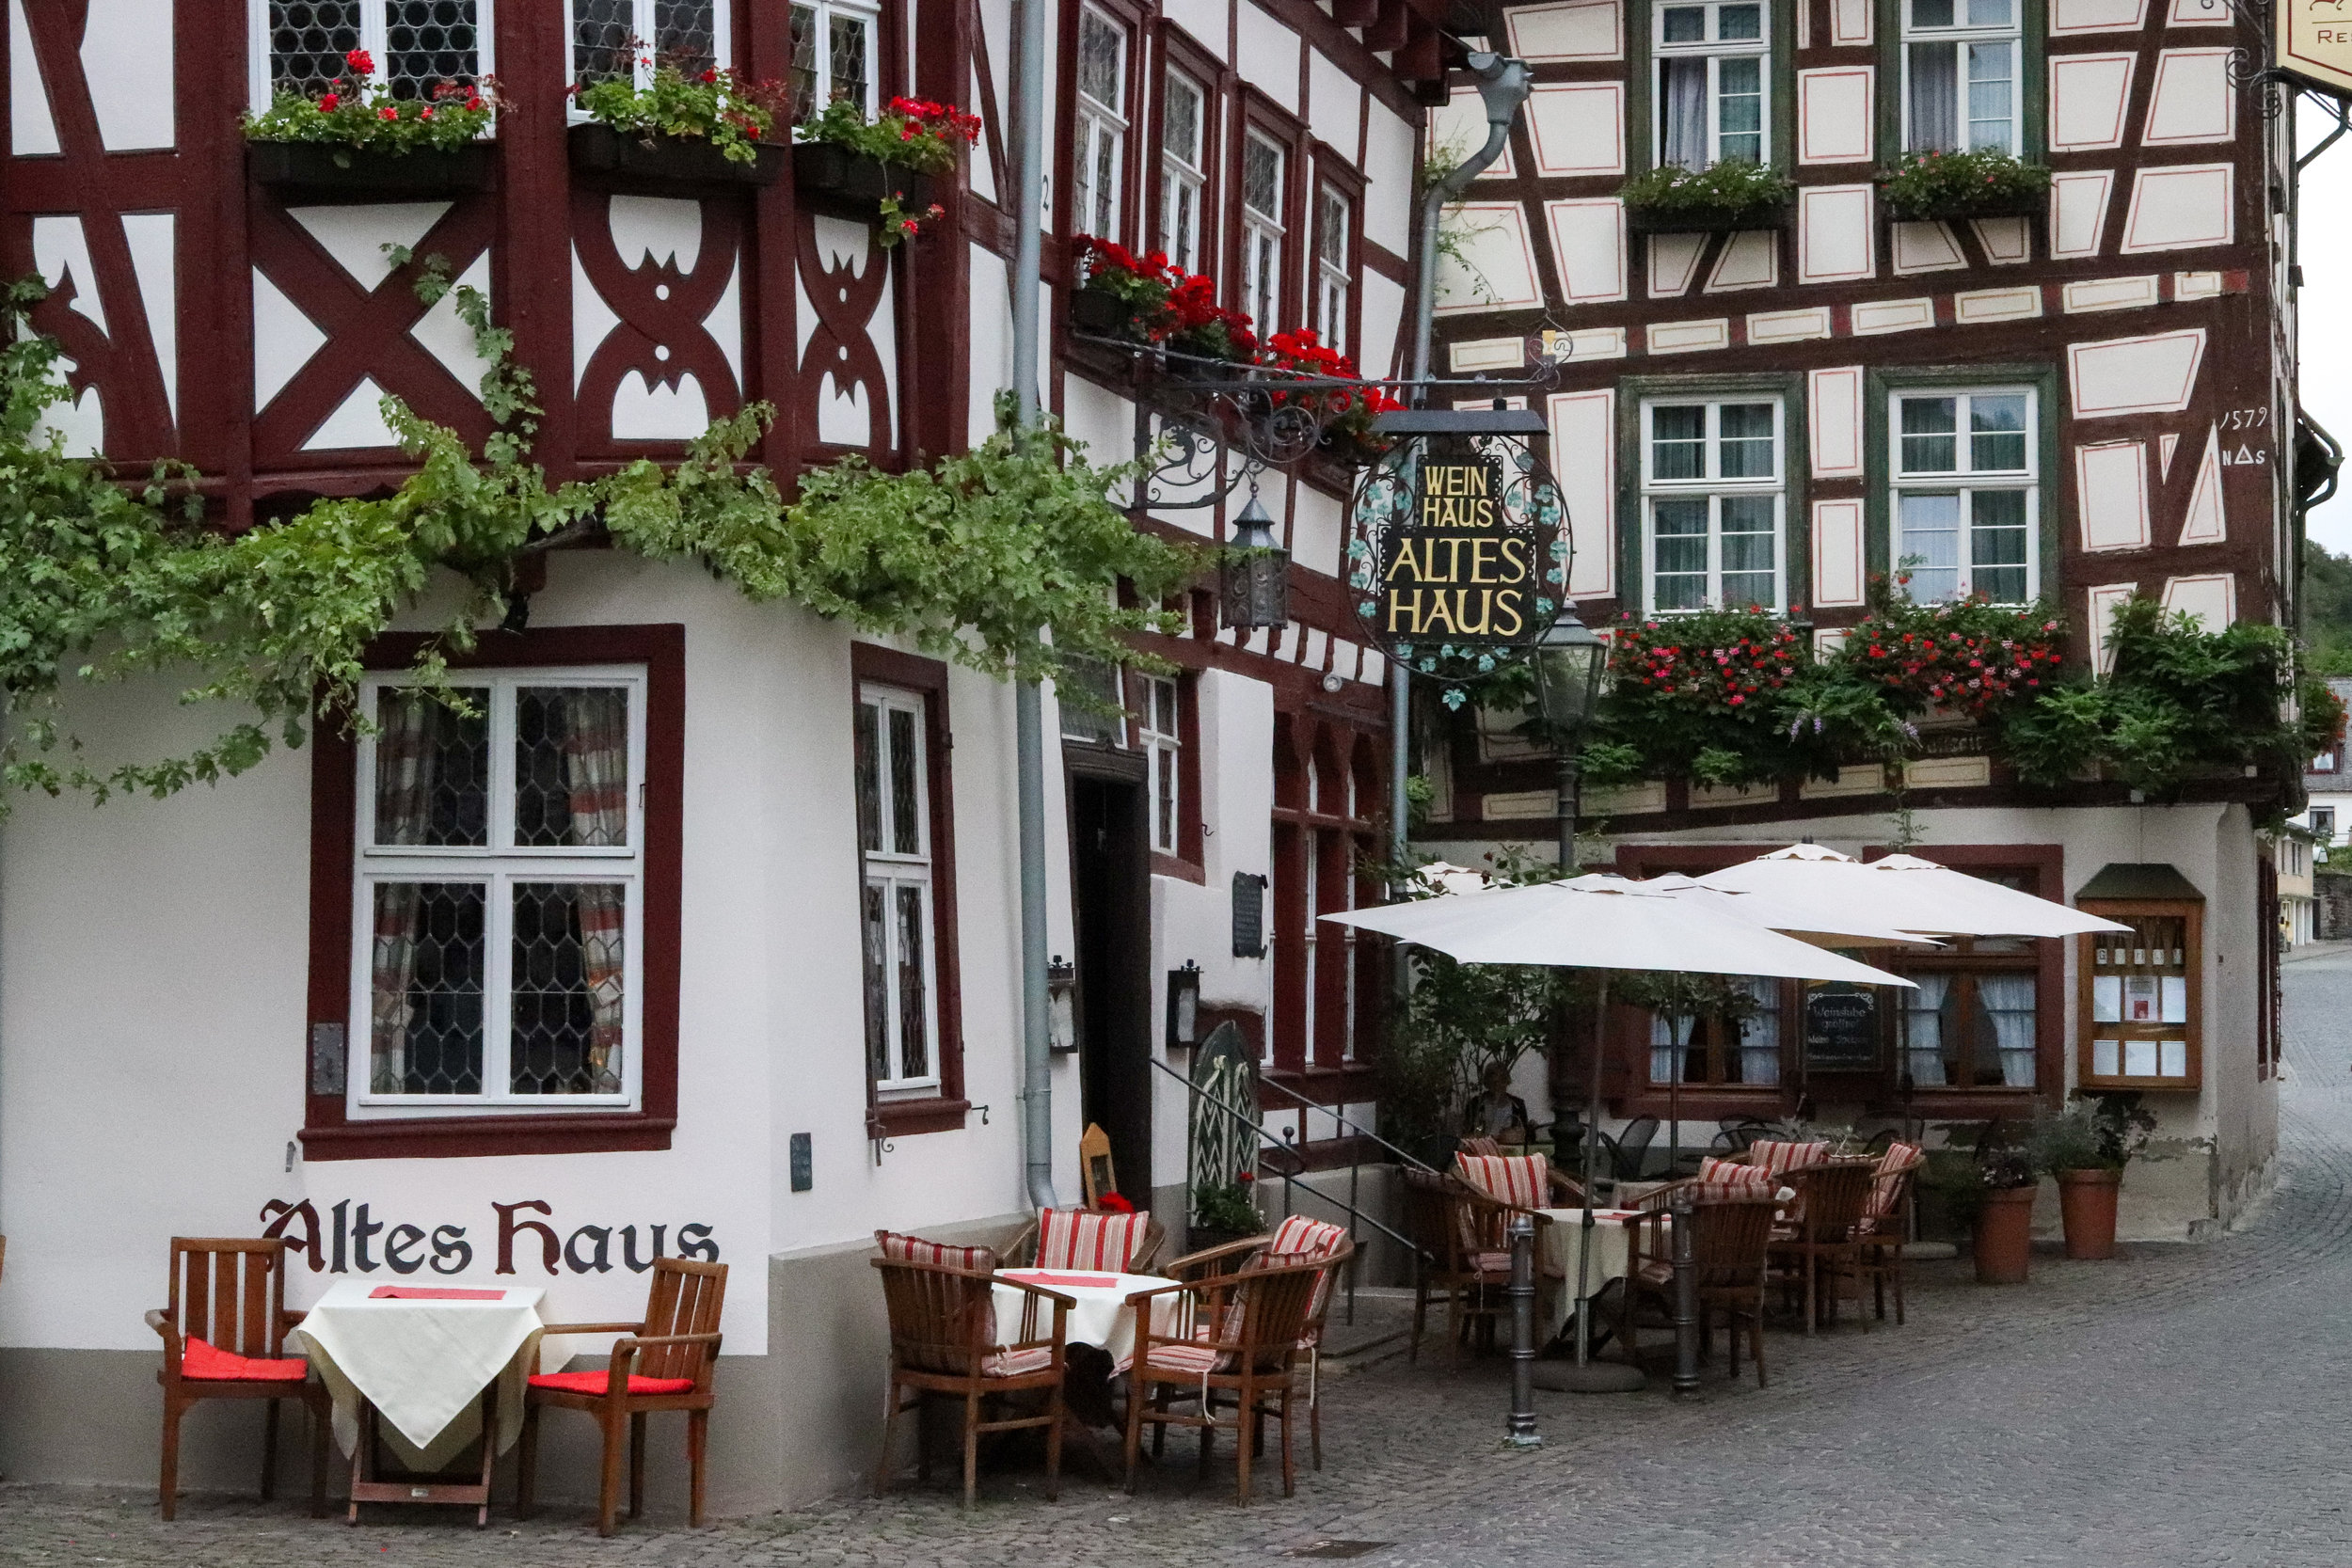 Altes Haus - eat here in Bacharach! Built in the 14th century. Get more information in this guide to Bacharach.